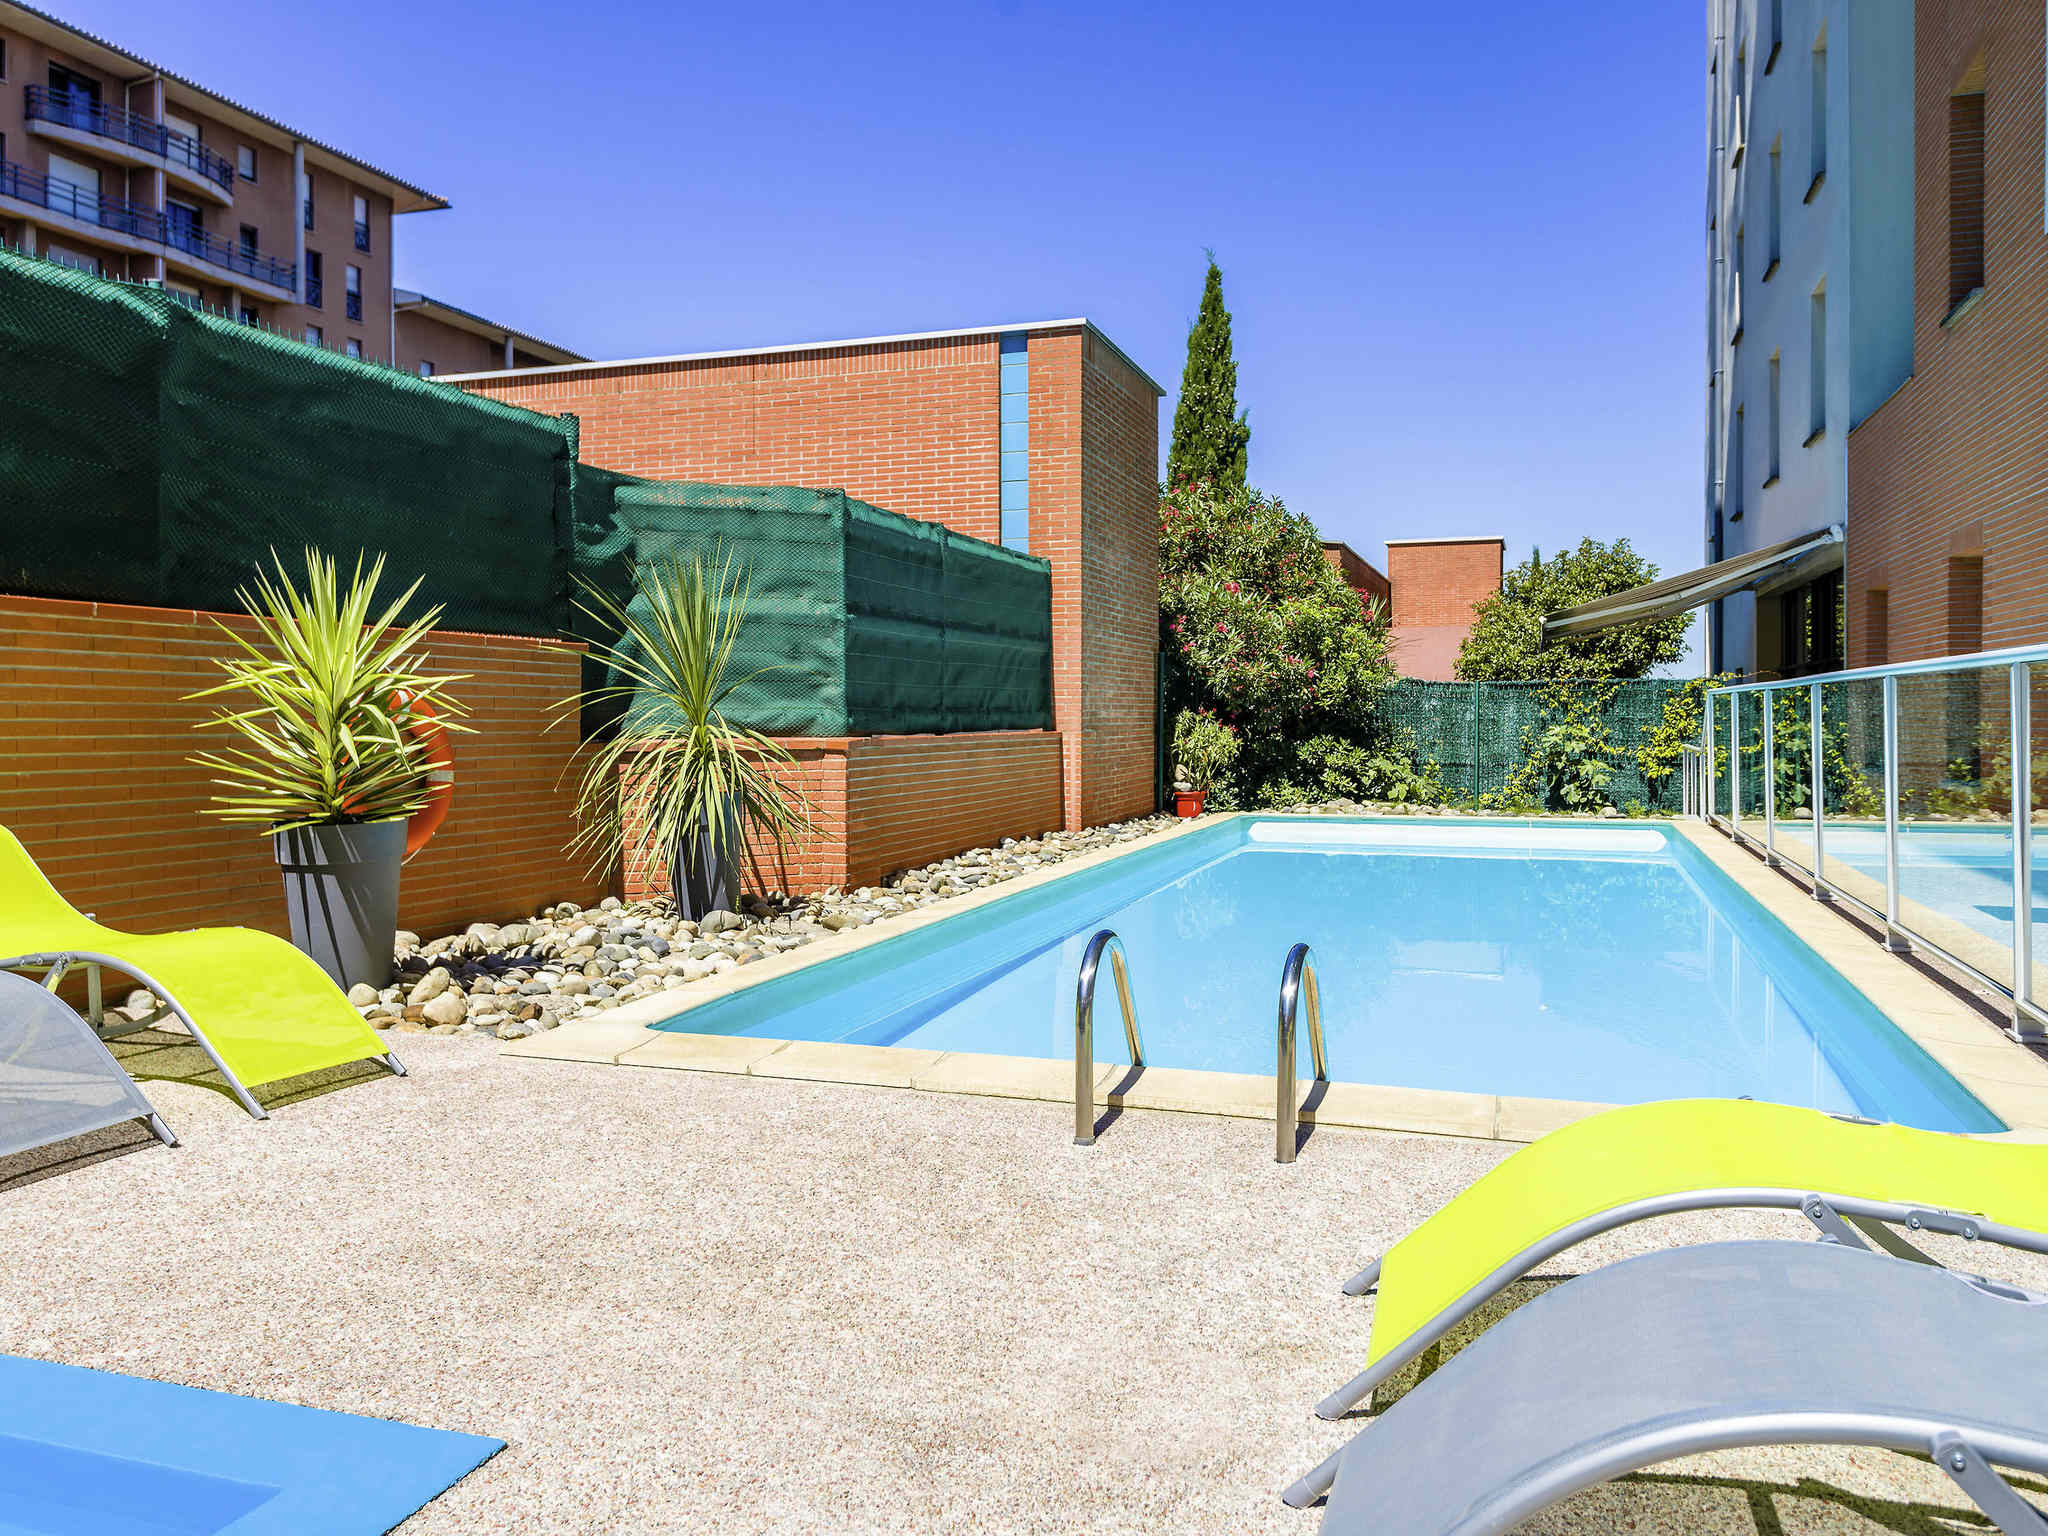 Hotel in toulouse aparthotel adagio access toulouse jolimont for Appart hotel jolimont